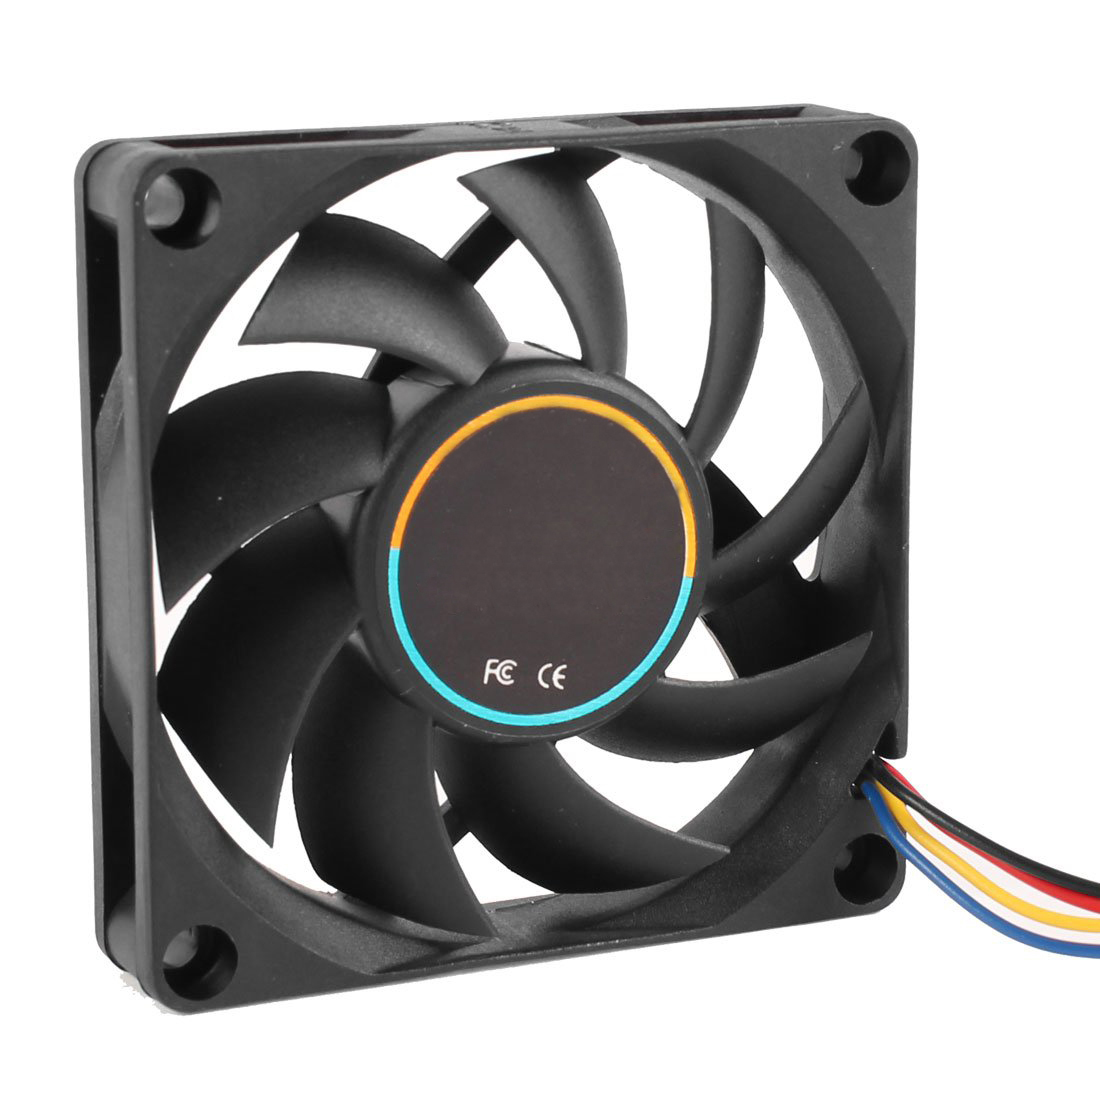 GTFS Hot 70mmx15mm 12V 4 Pins PWM PC Computer Case CPU Cooler Cooling Fan Black(China (Mainland))